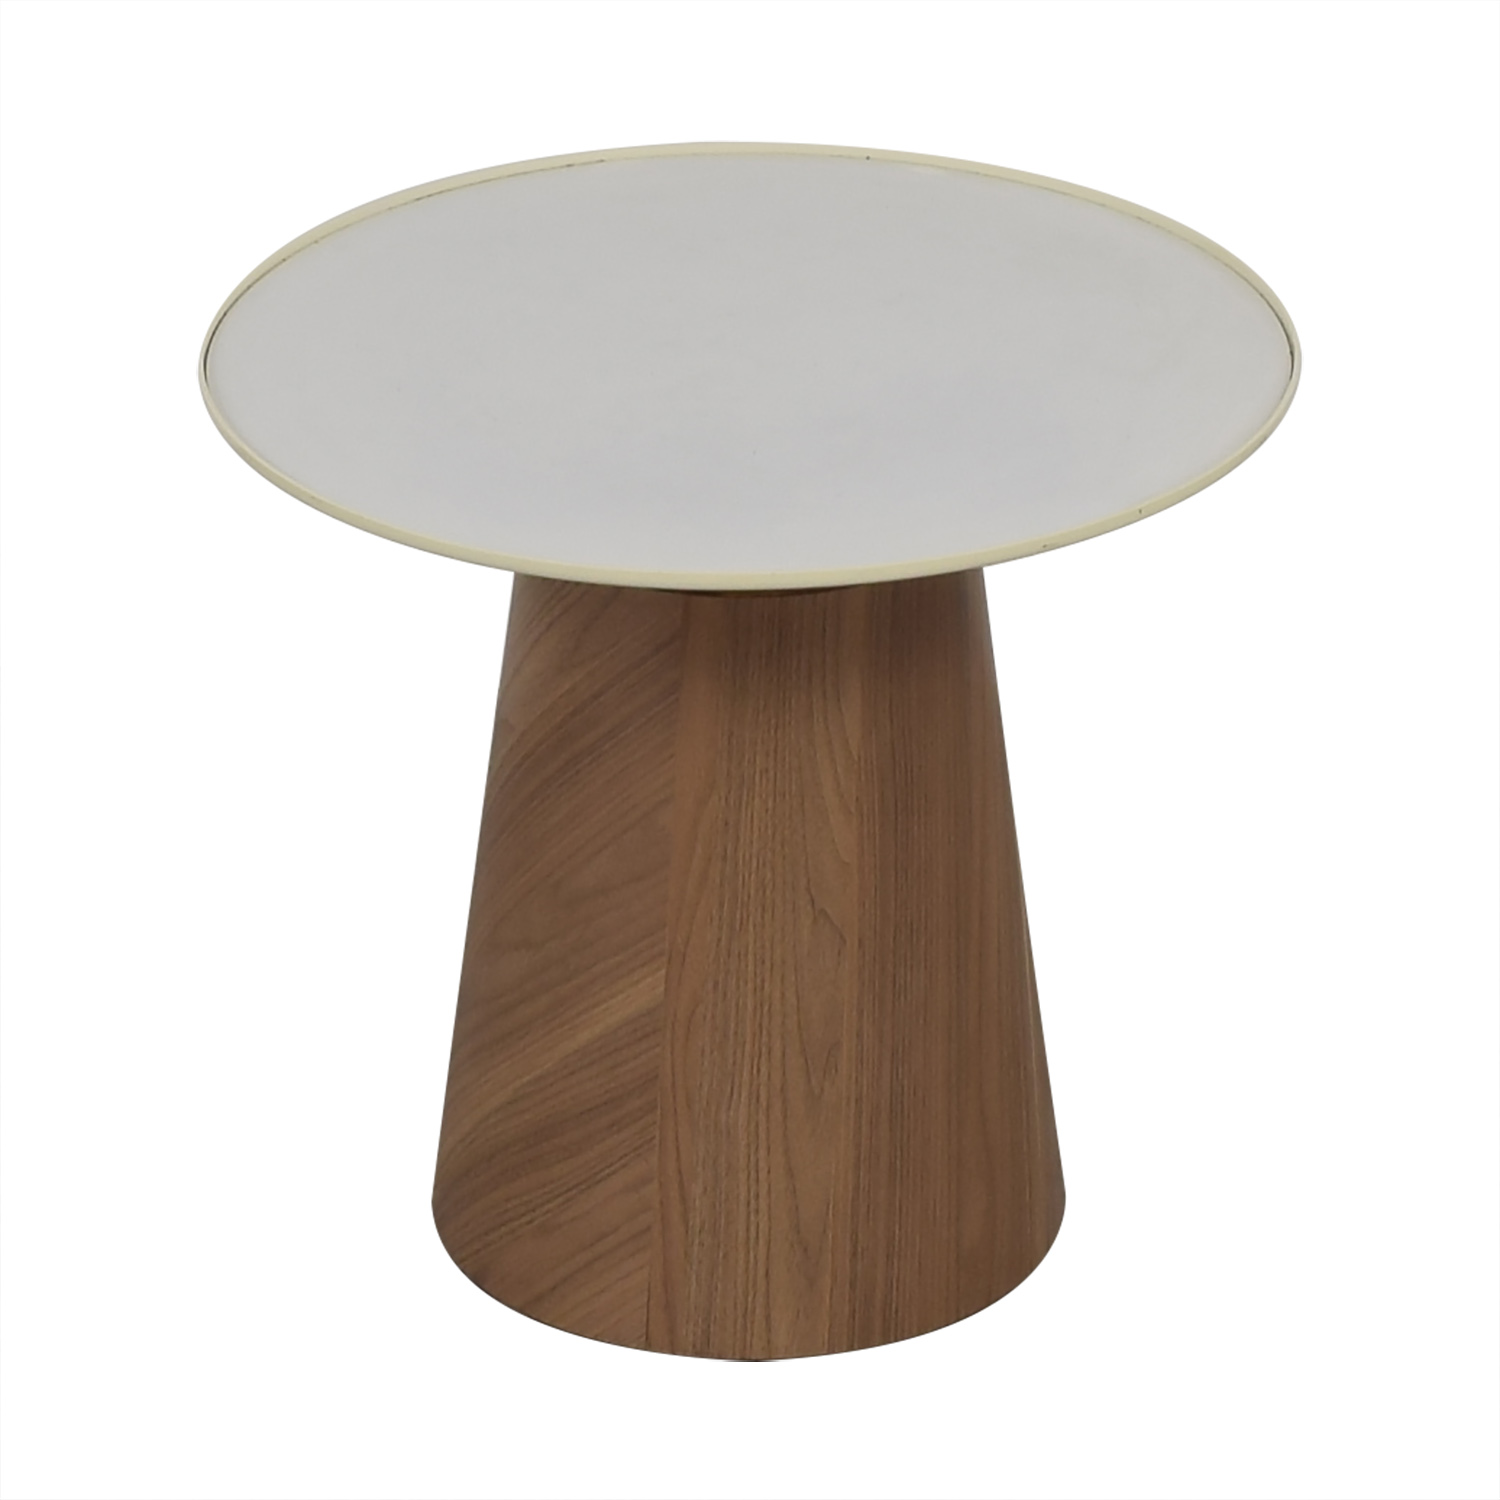 Steelcase Turnstone Campfire Round Paper Table / Tables